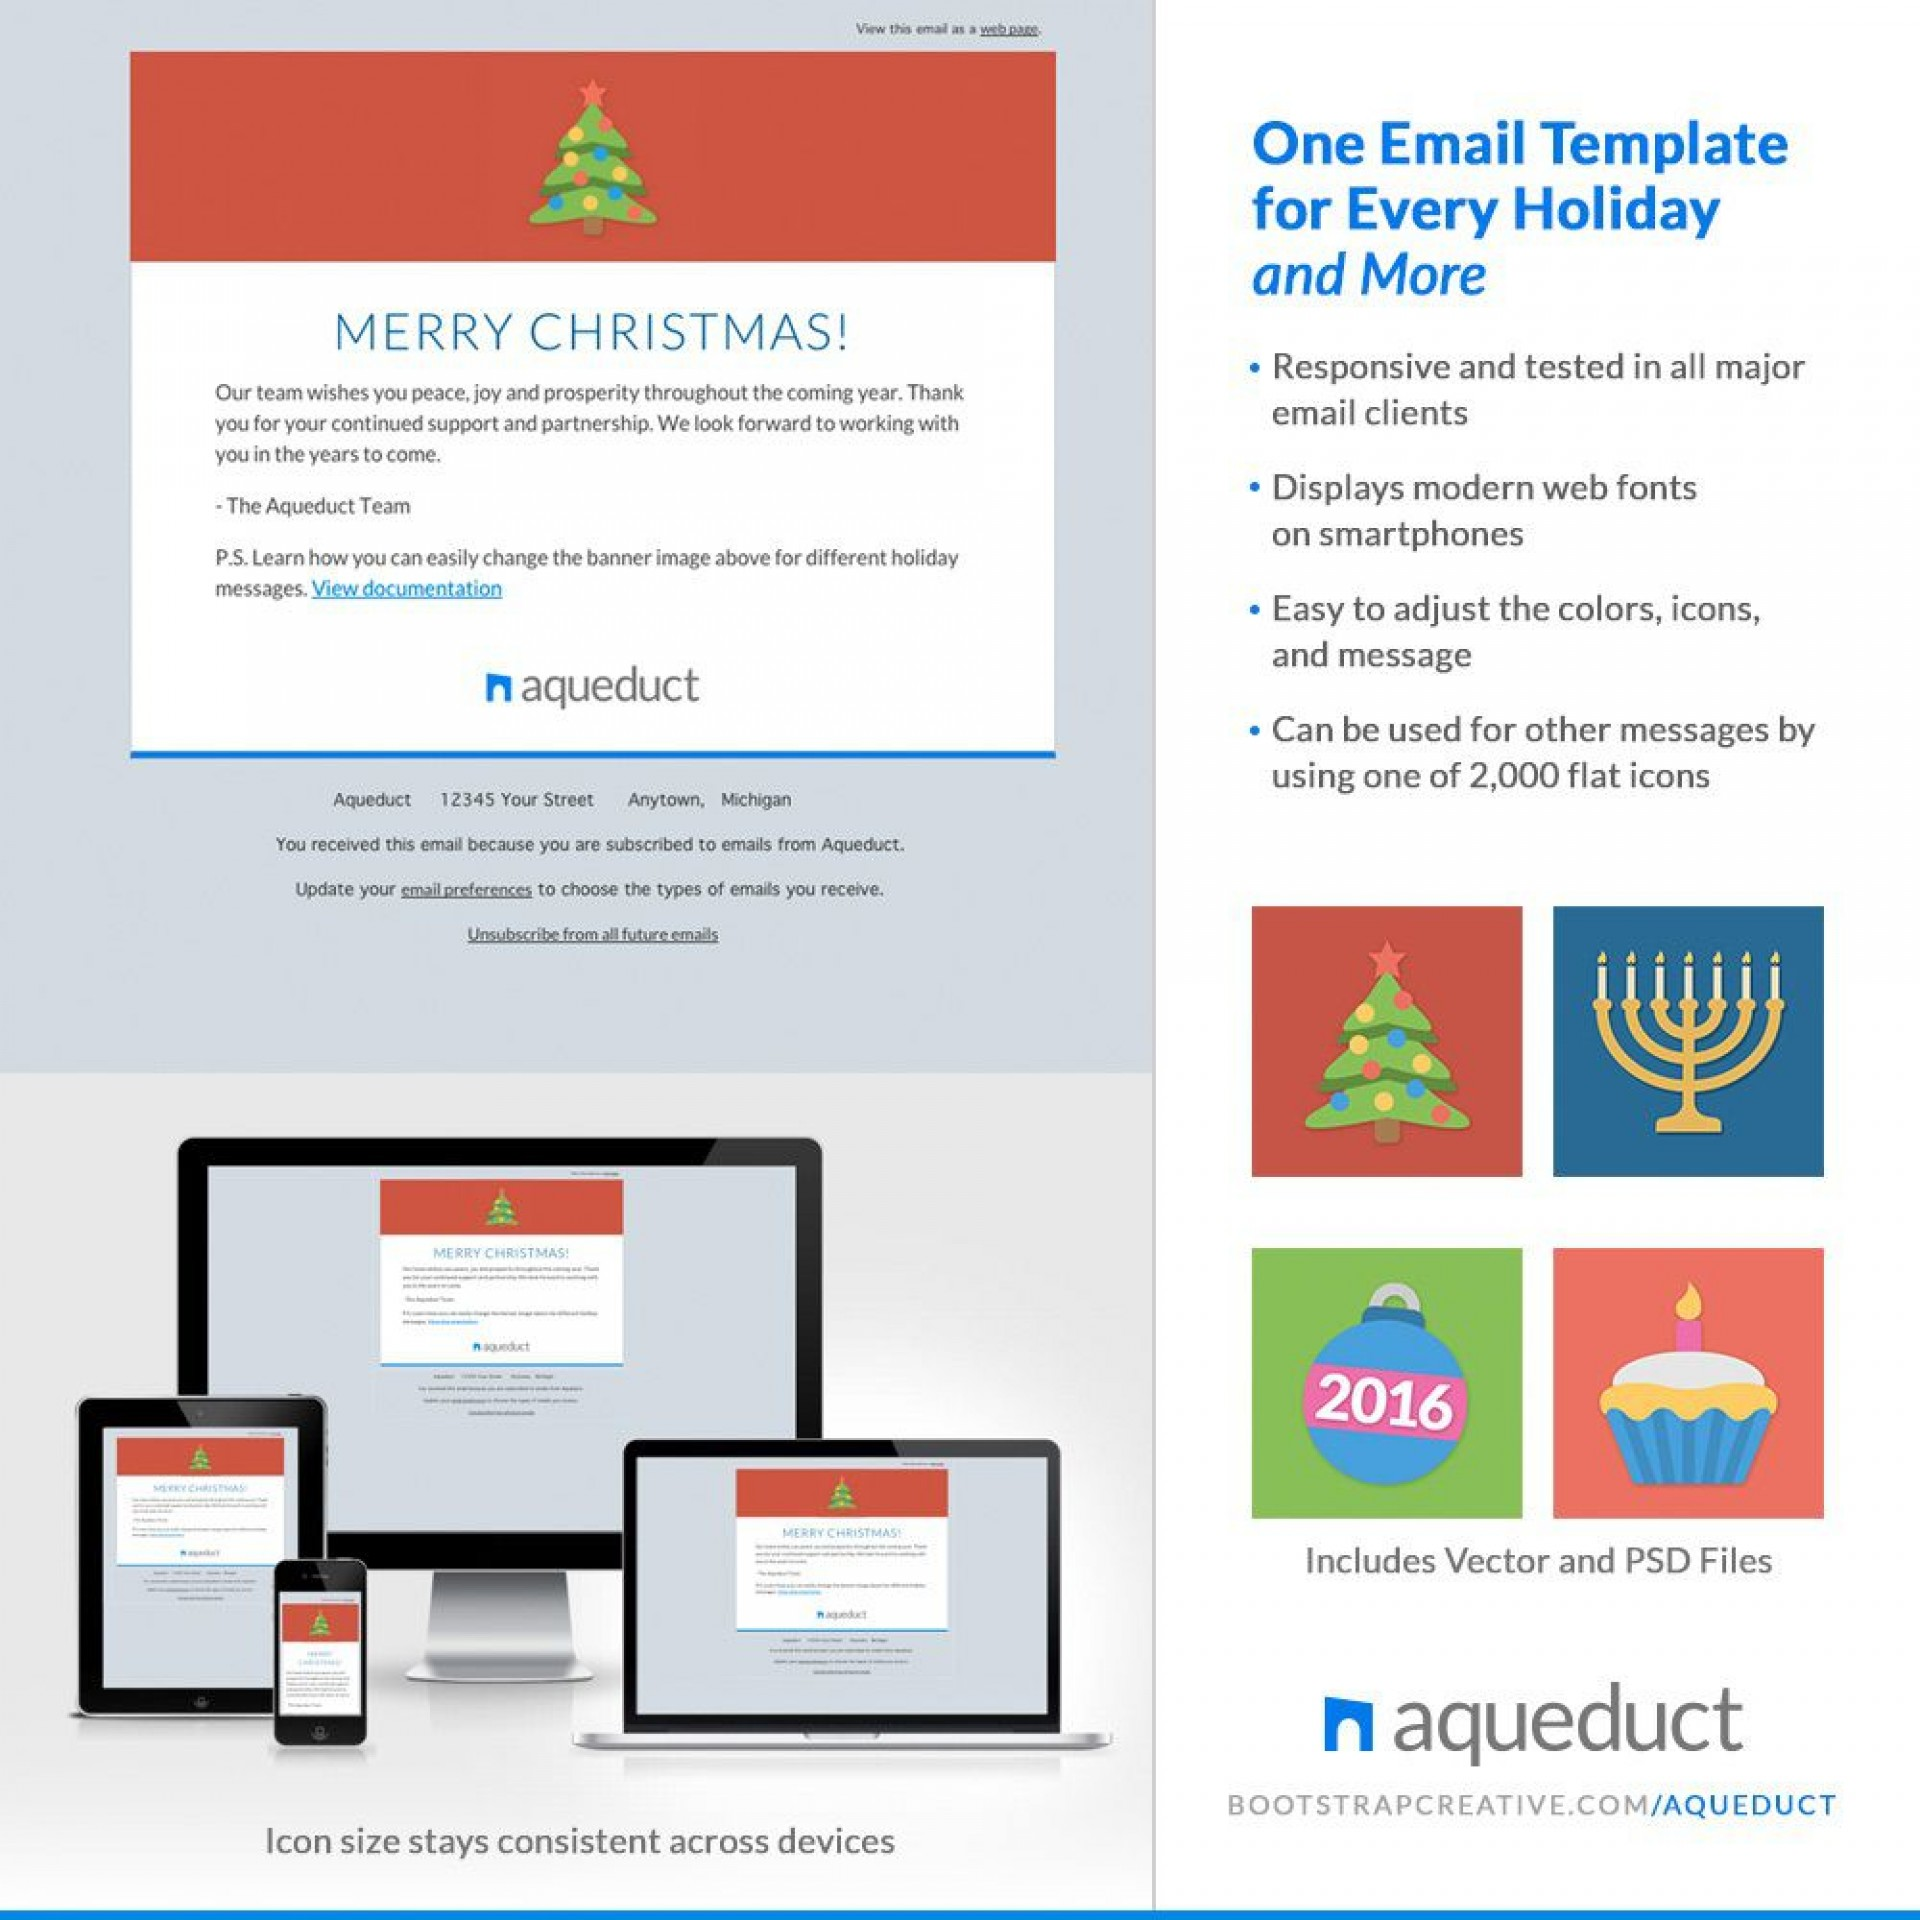 006 Awful Holiday E Mail Template High Resolution  Templates Mailchimp Email1920